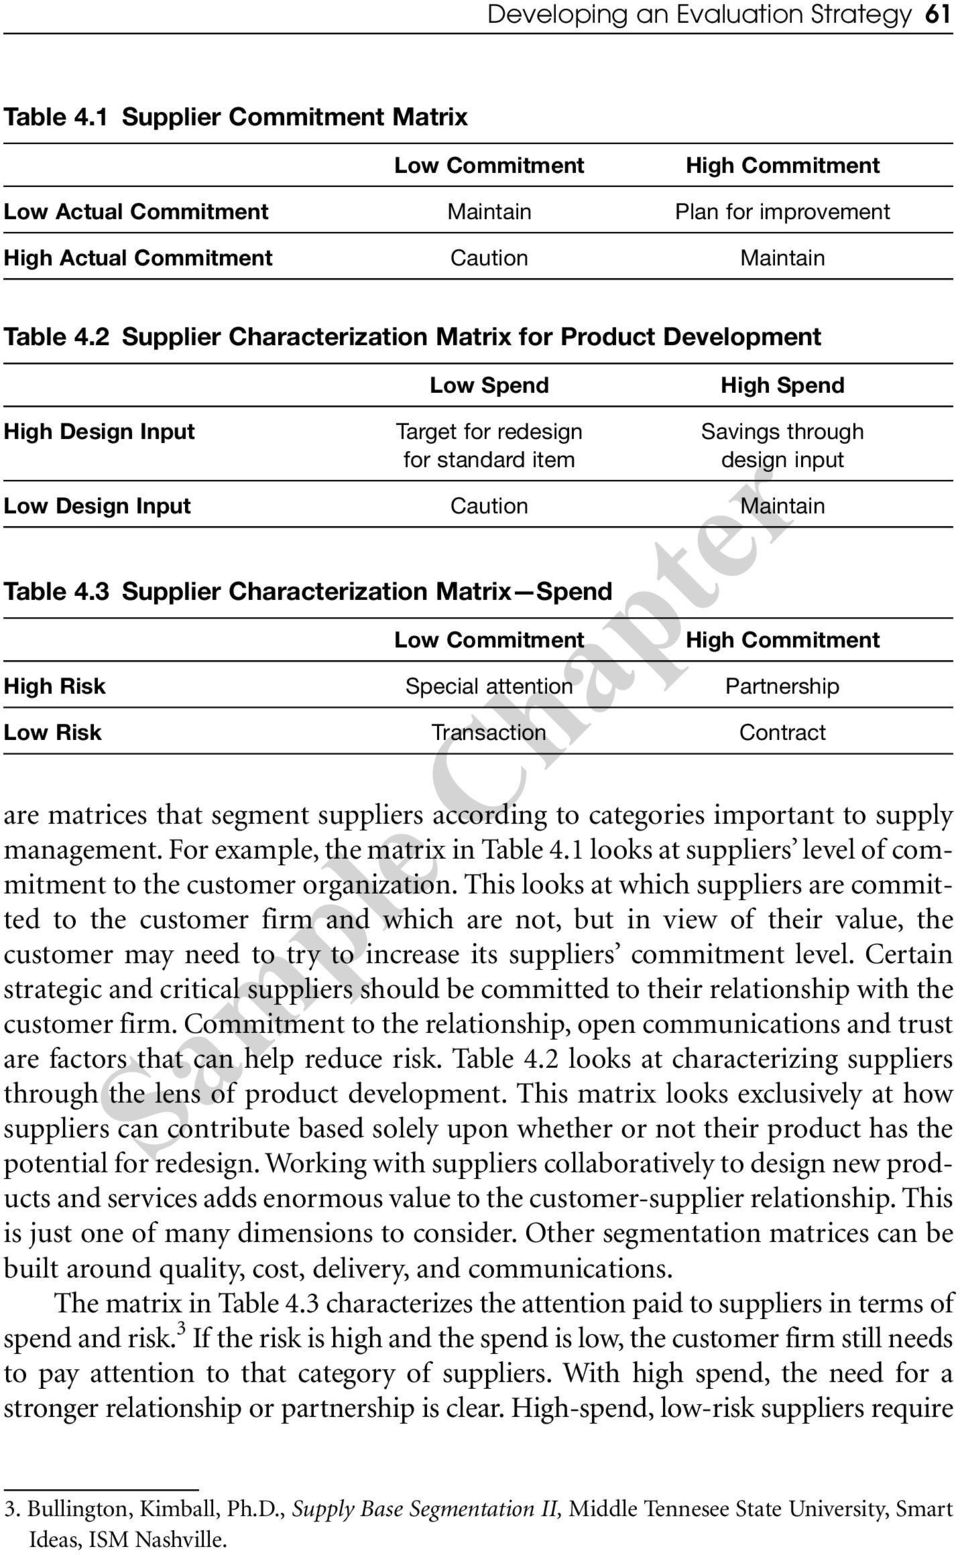 2 Supplier Characterization Matrix for Product Development Low Spend High Spend High Design Input Target for redesign Savings through for standard item design input Low Design Input Caution Maintain